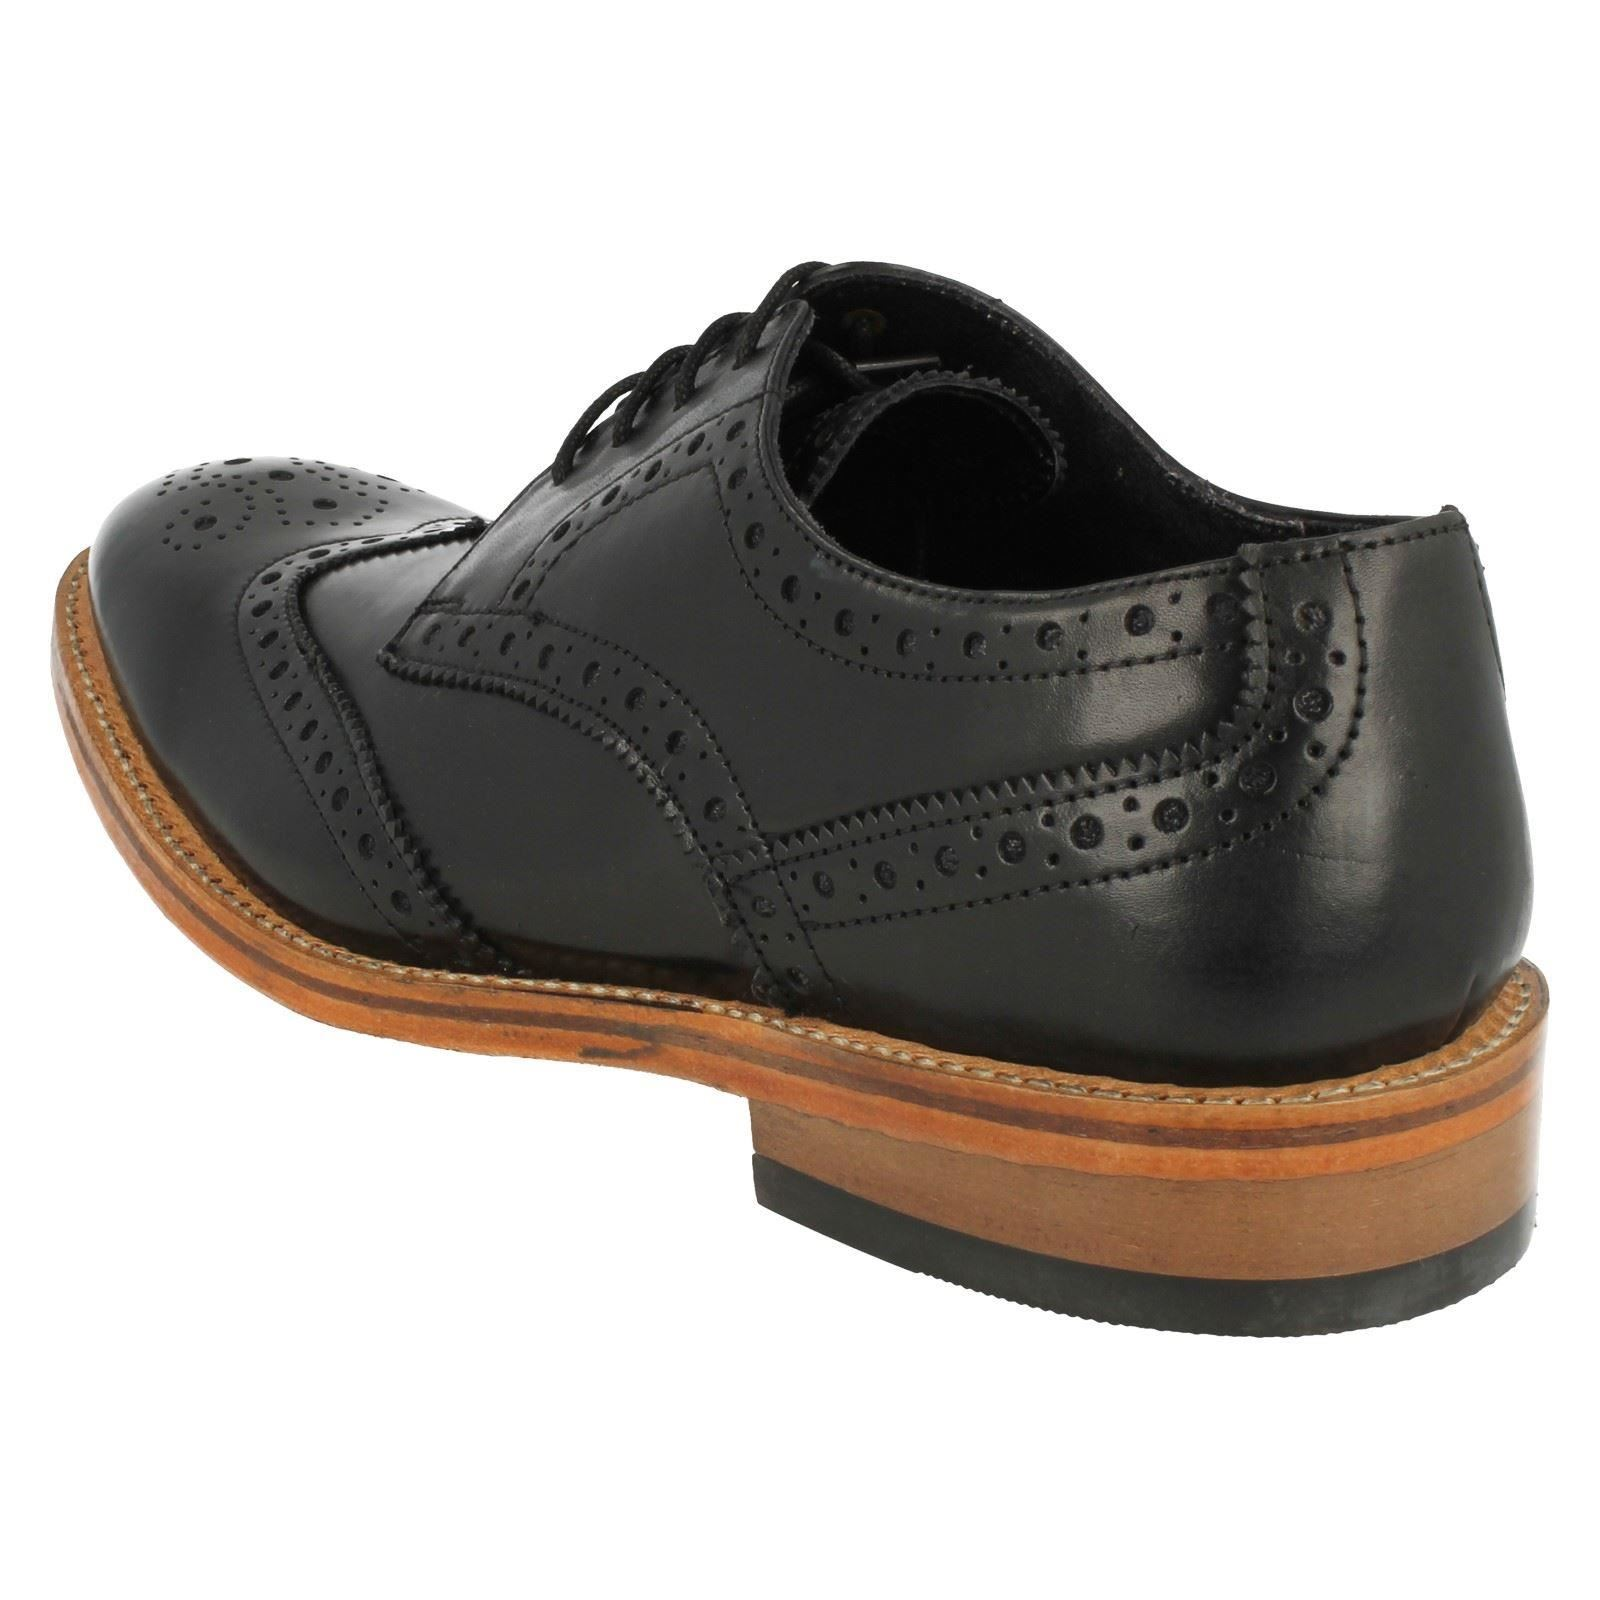 Mens Catesby Up Smart Lace Up Catesby Brogues - 'Mcatessurryb' c47d70